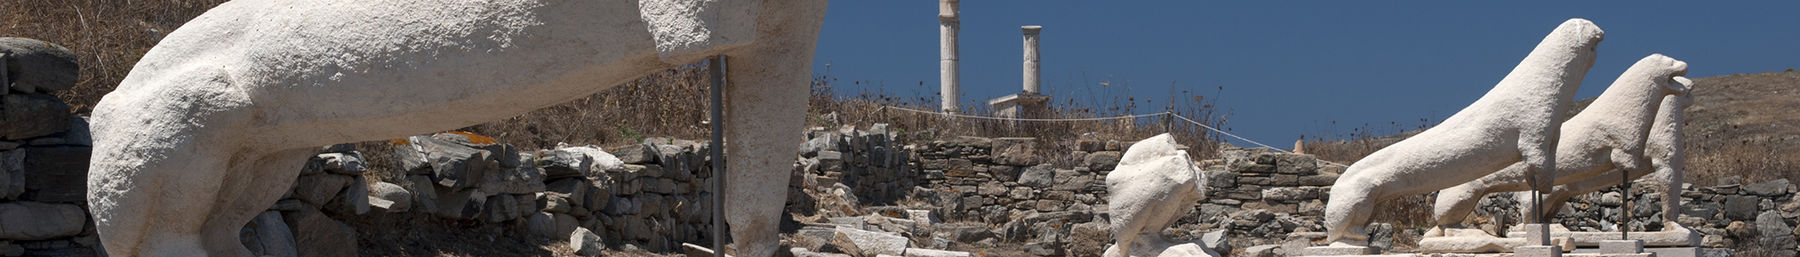 Delos Cyclades Greece banner.jpg